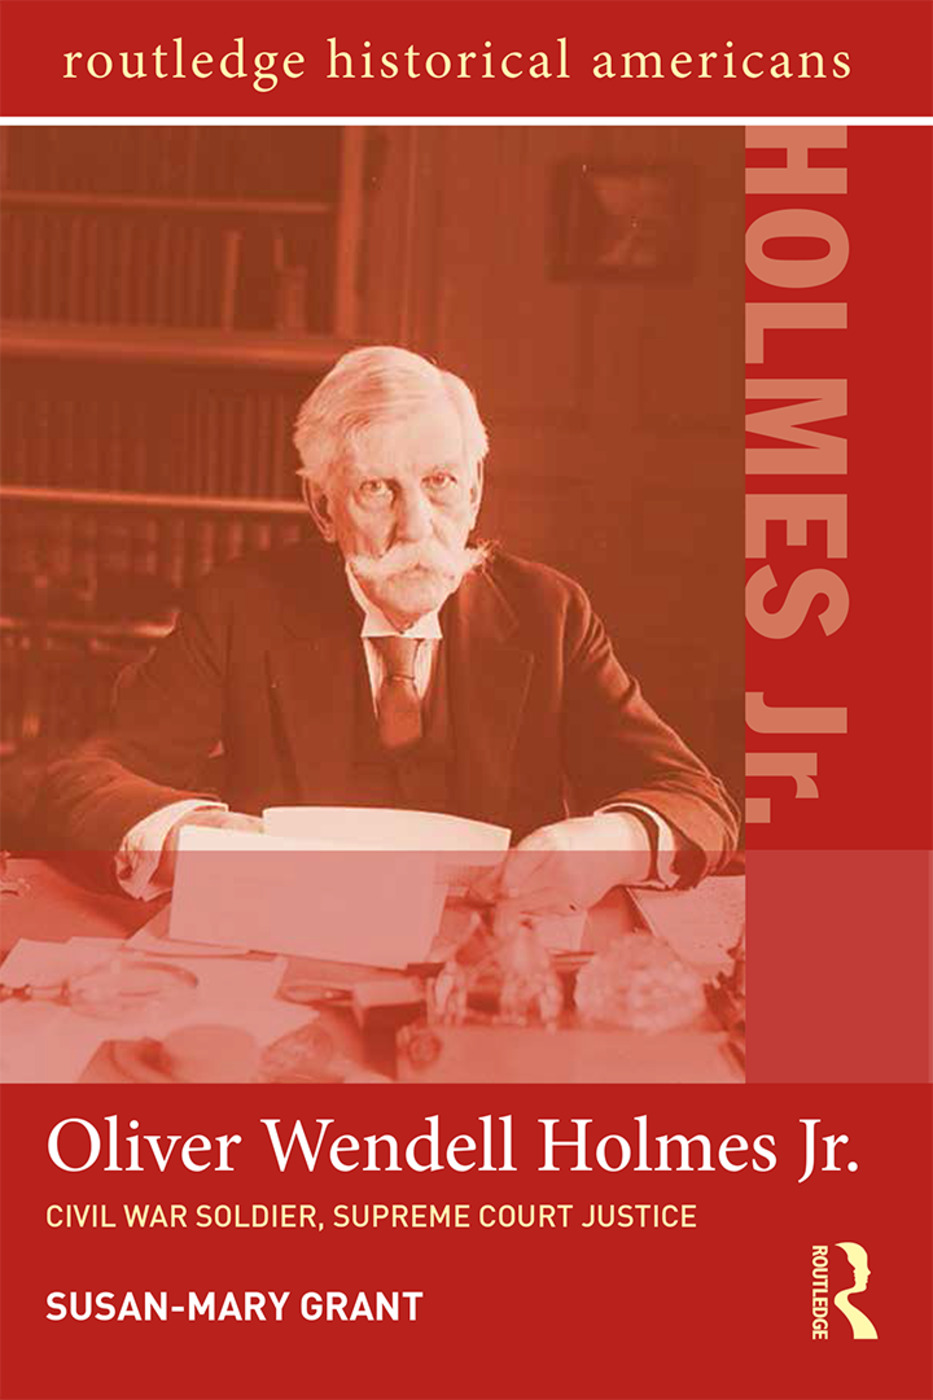 Oliver Wendell Holmes, Jr.: Civil War Soldier, Supreme Court Justice book cover